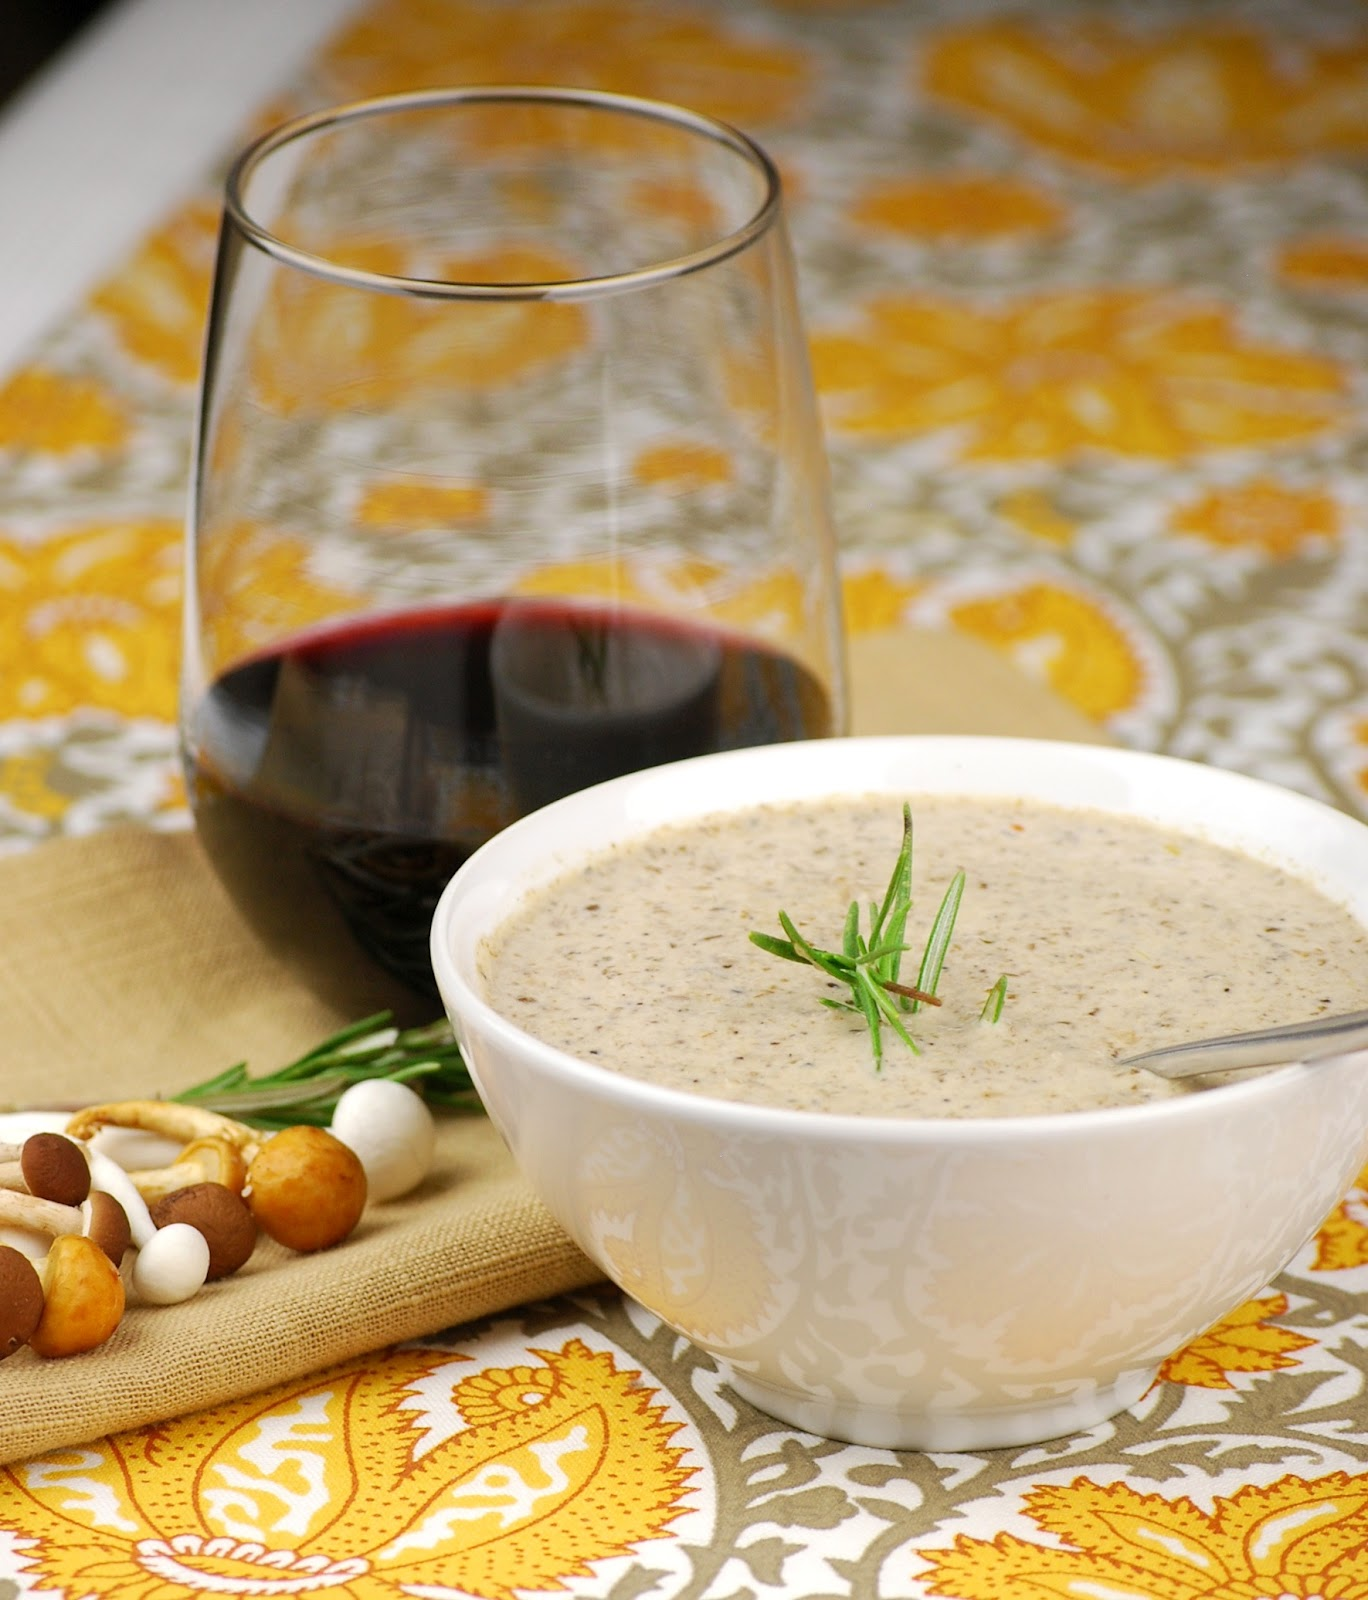 'Soup-er' Saturday luncheon and wine pairing!